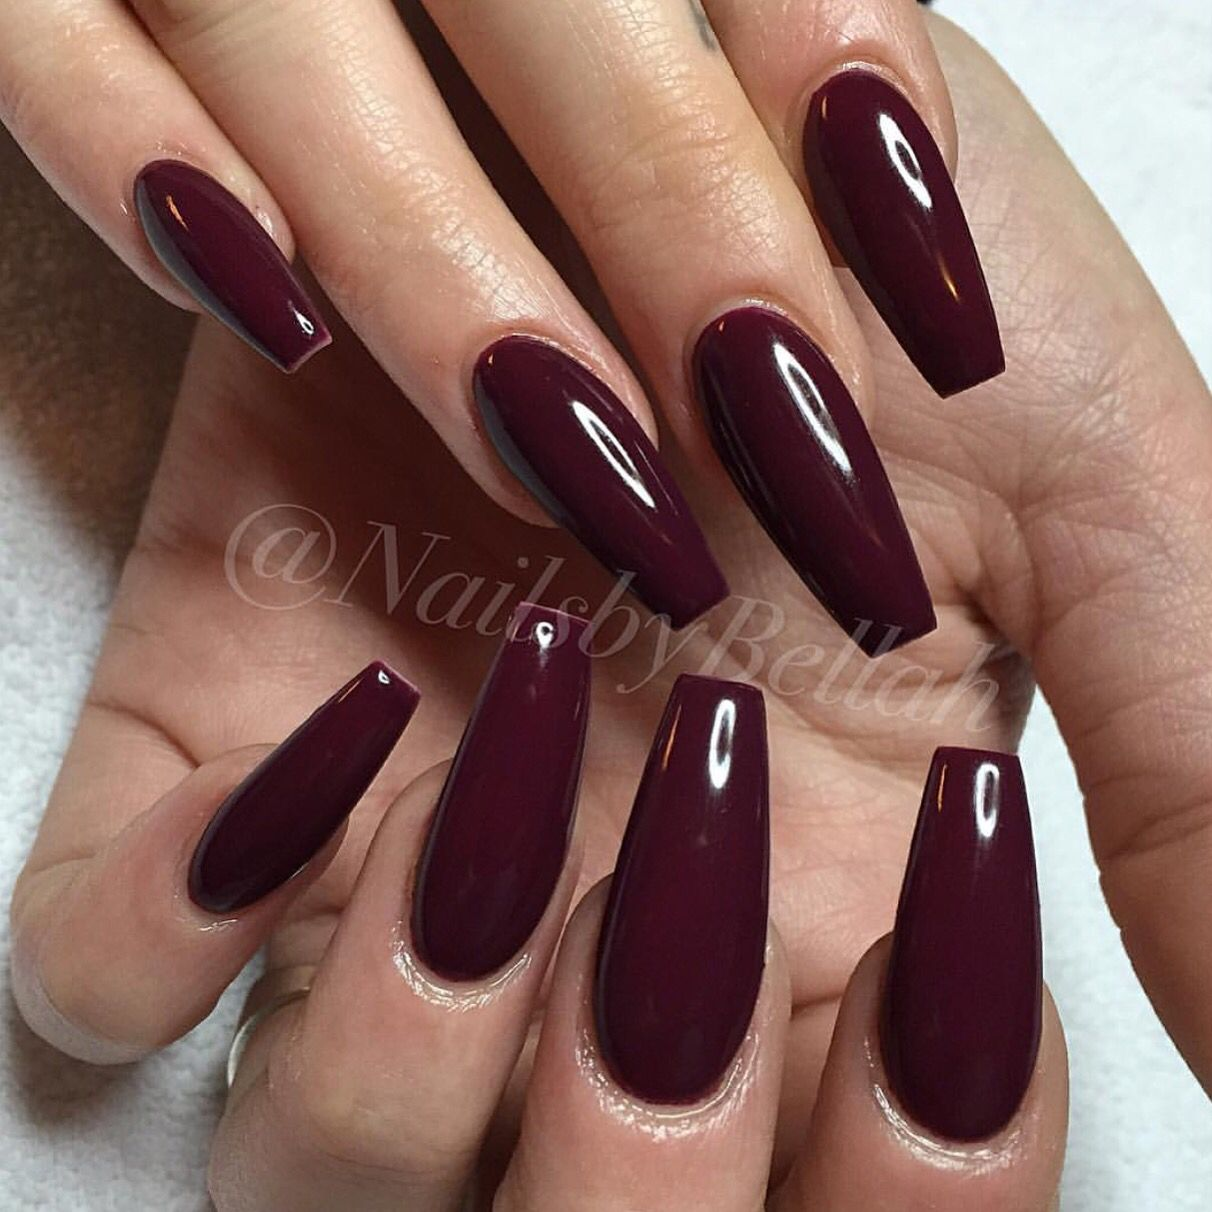 Pin von Emma Gray auf ideas | Pinterest | Nagelschere, Nageldesign ...